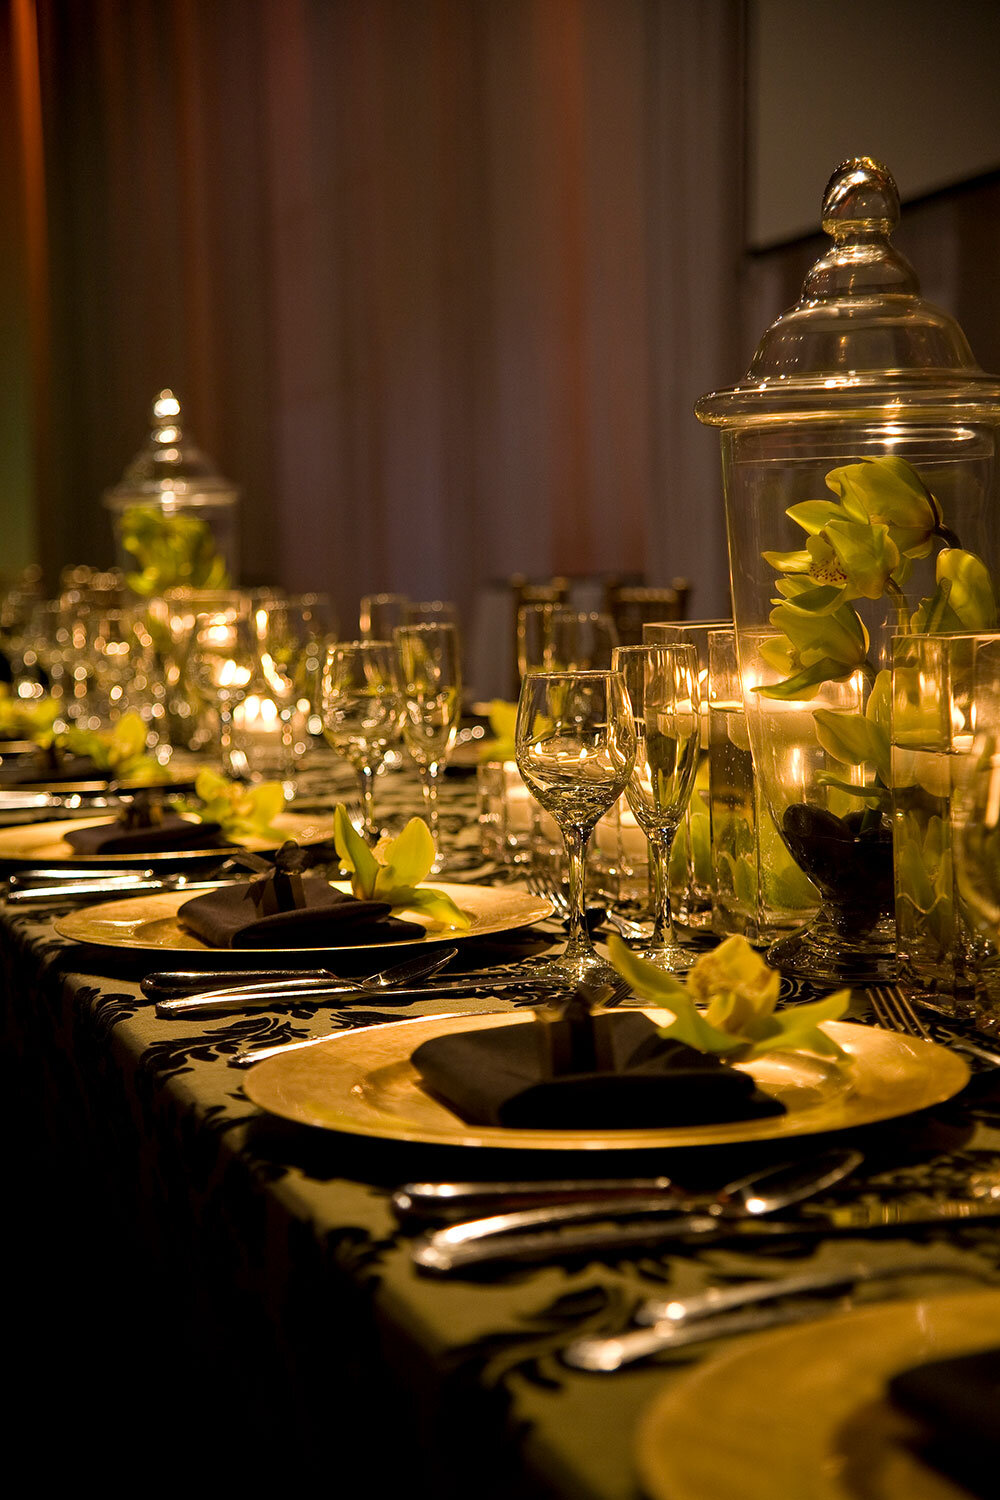 Paras-Events-Moss-Organic-Earthy-Apothecary-Jar-Wedding-Reception-Liberty-Grand-2.jpg